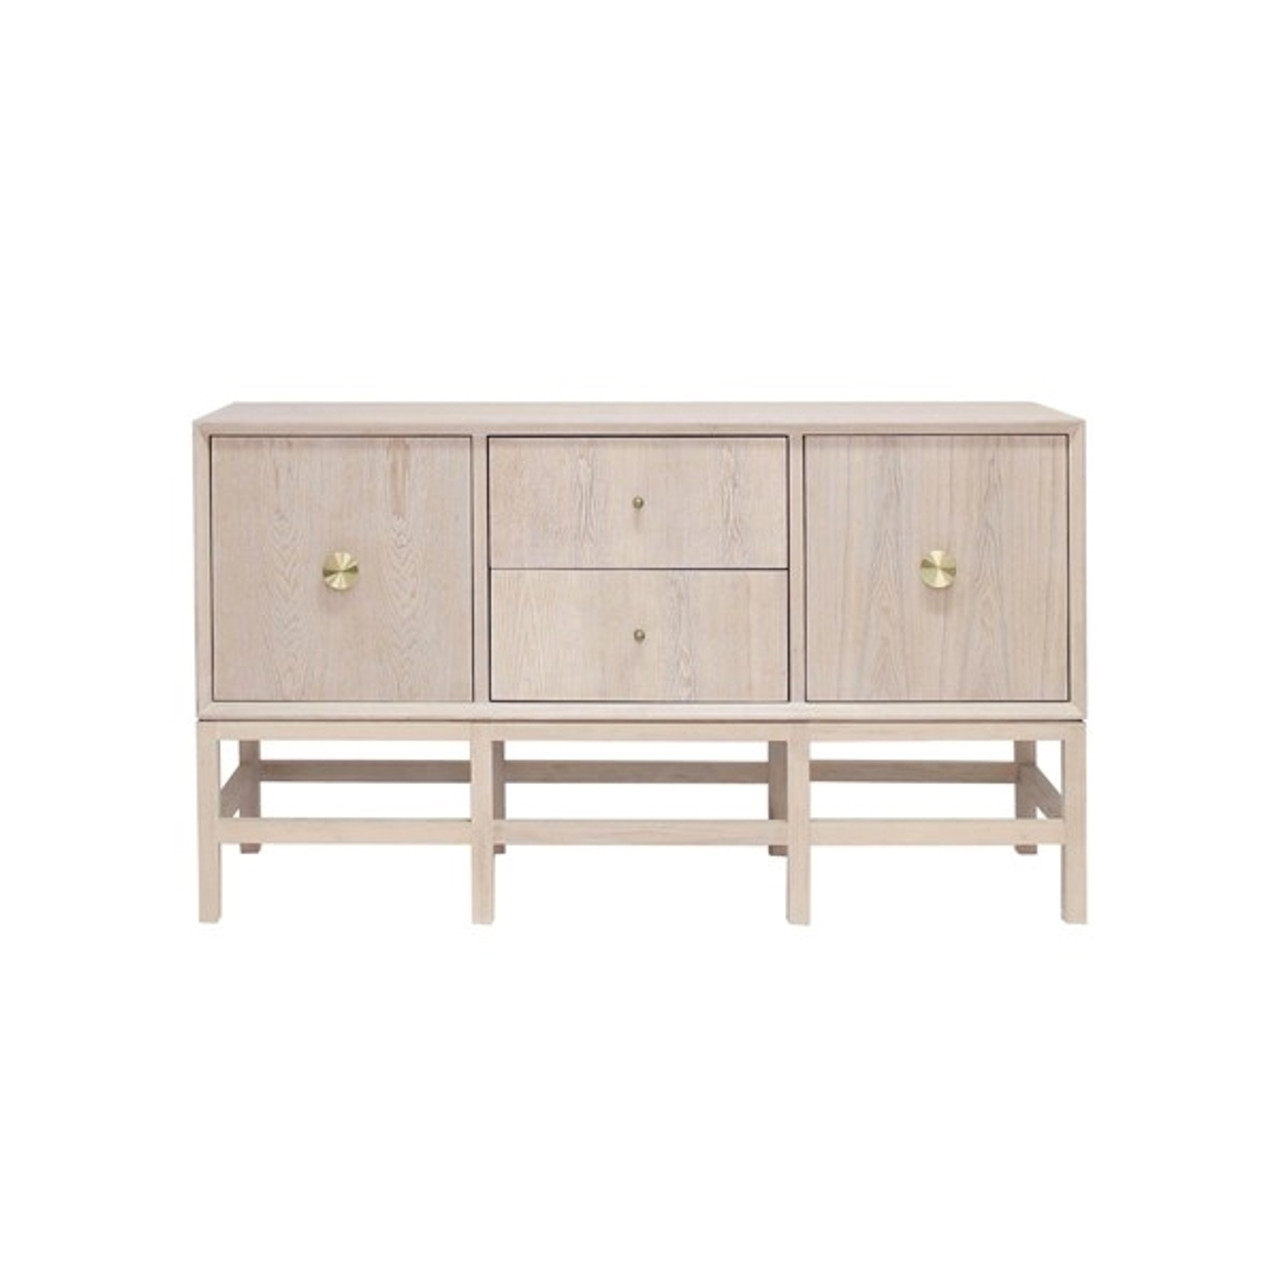 Worlds Away Lindhurst Buffet Cabinet In Cerused Oak With Antique Brass Hardware Lindhurst Co